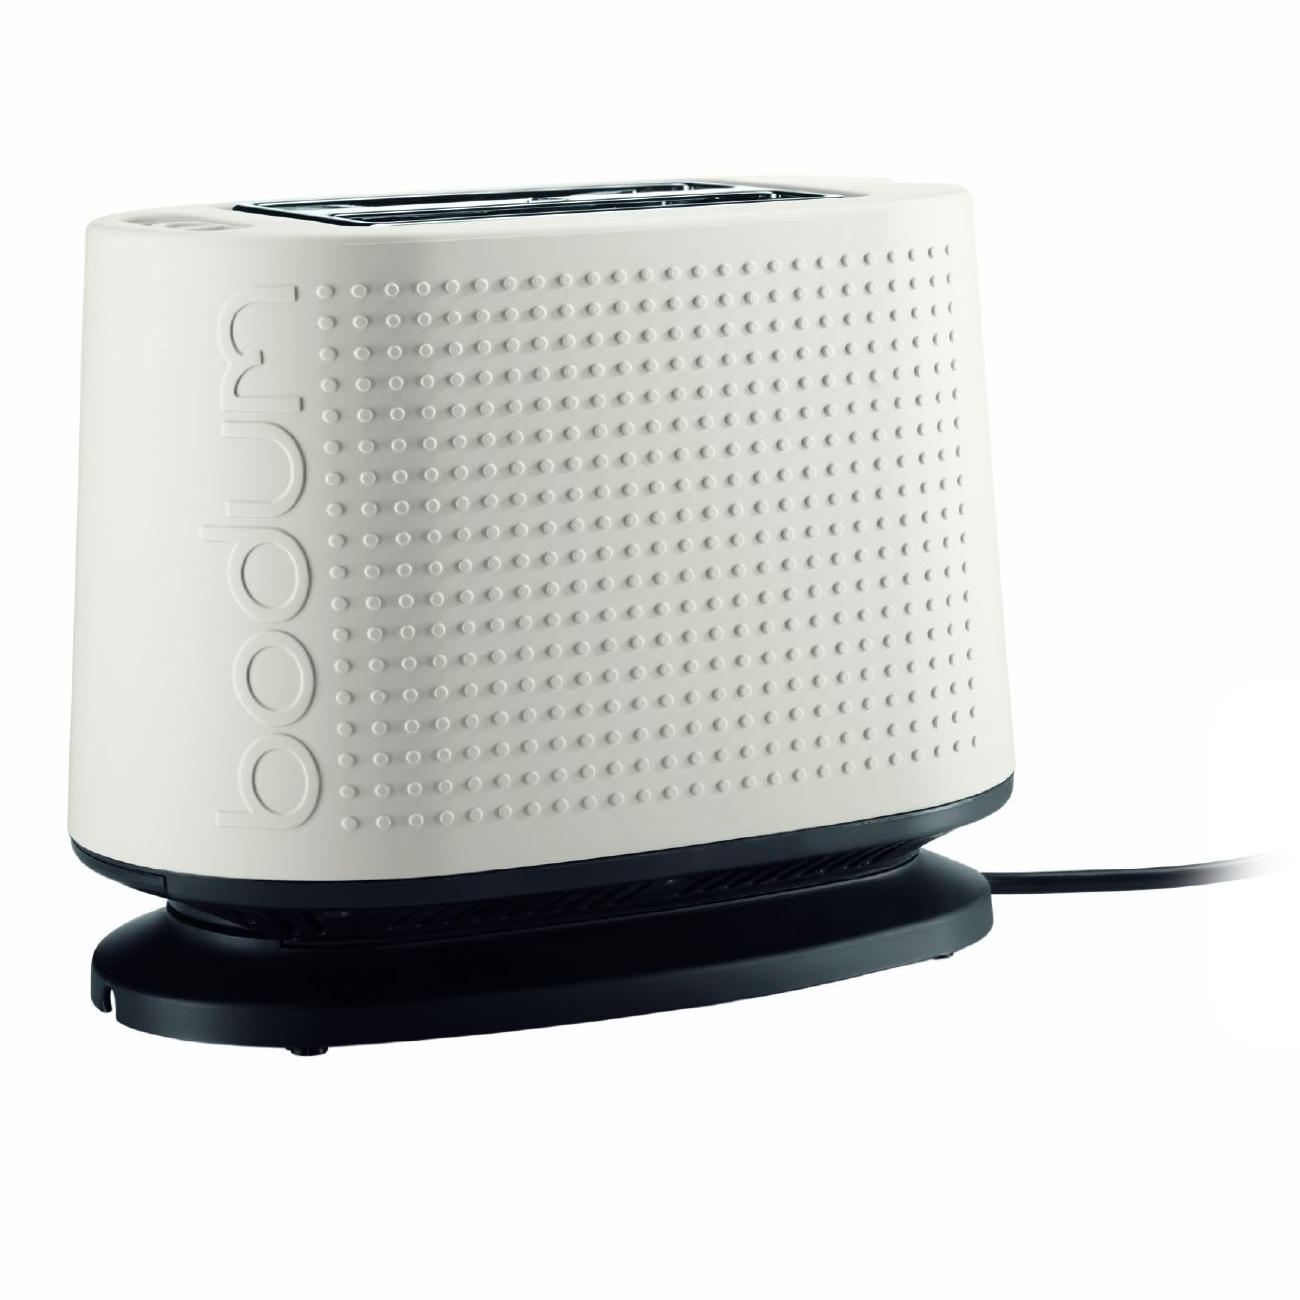 Bodum Bistro White 2 Slice Toaster with Defrost and Warming Rack